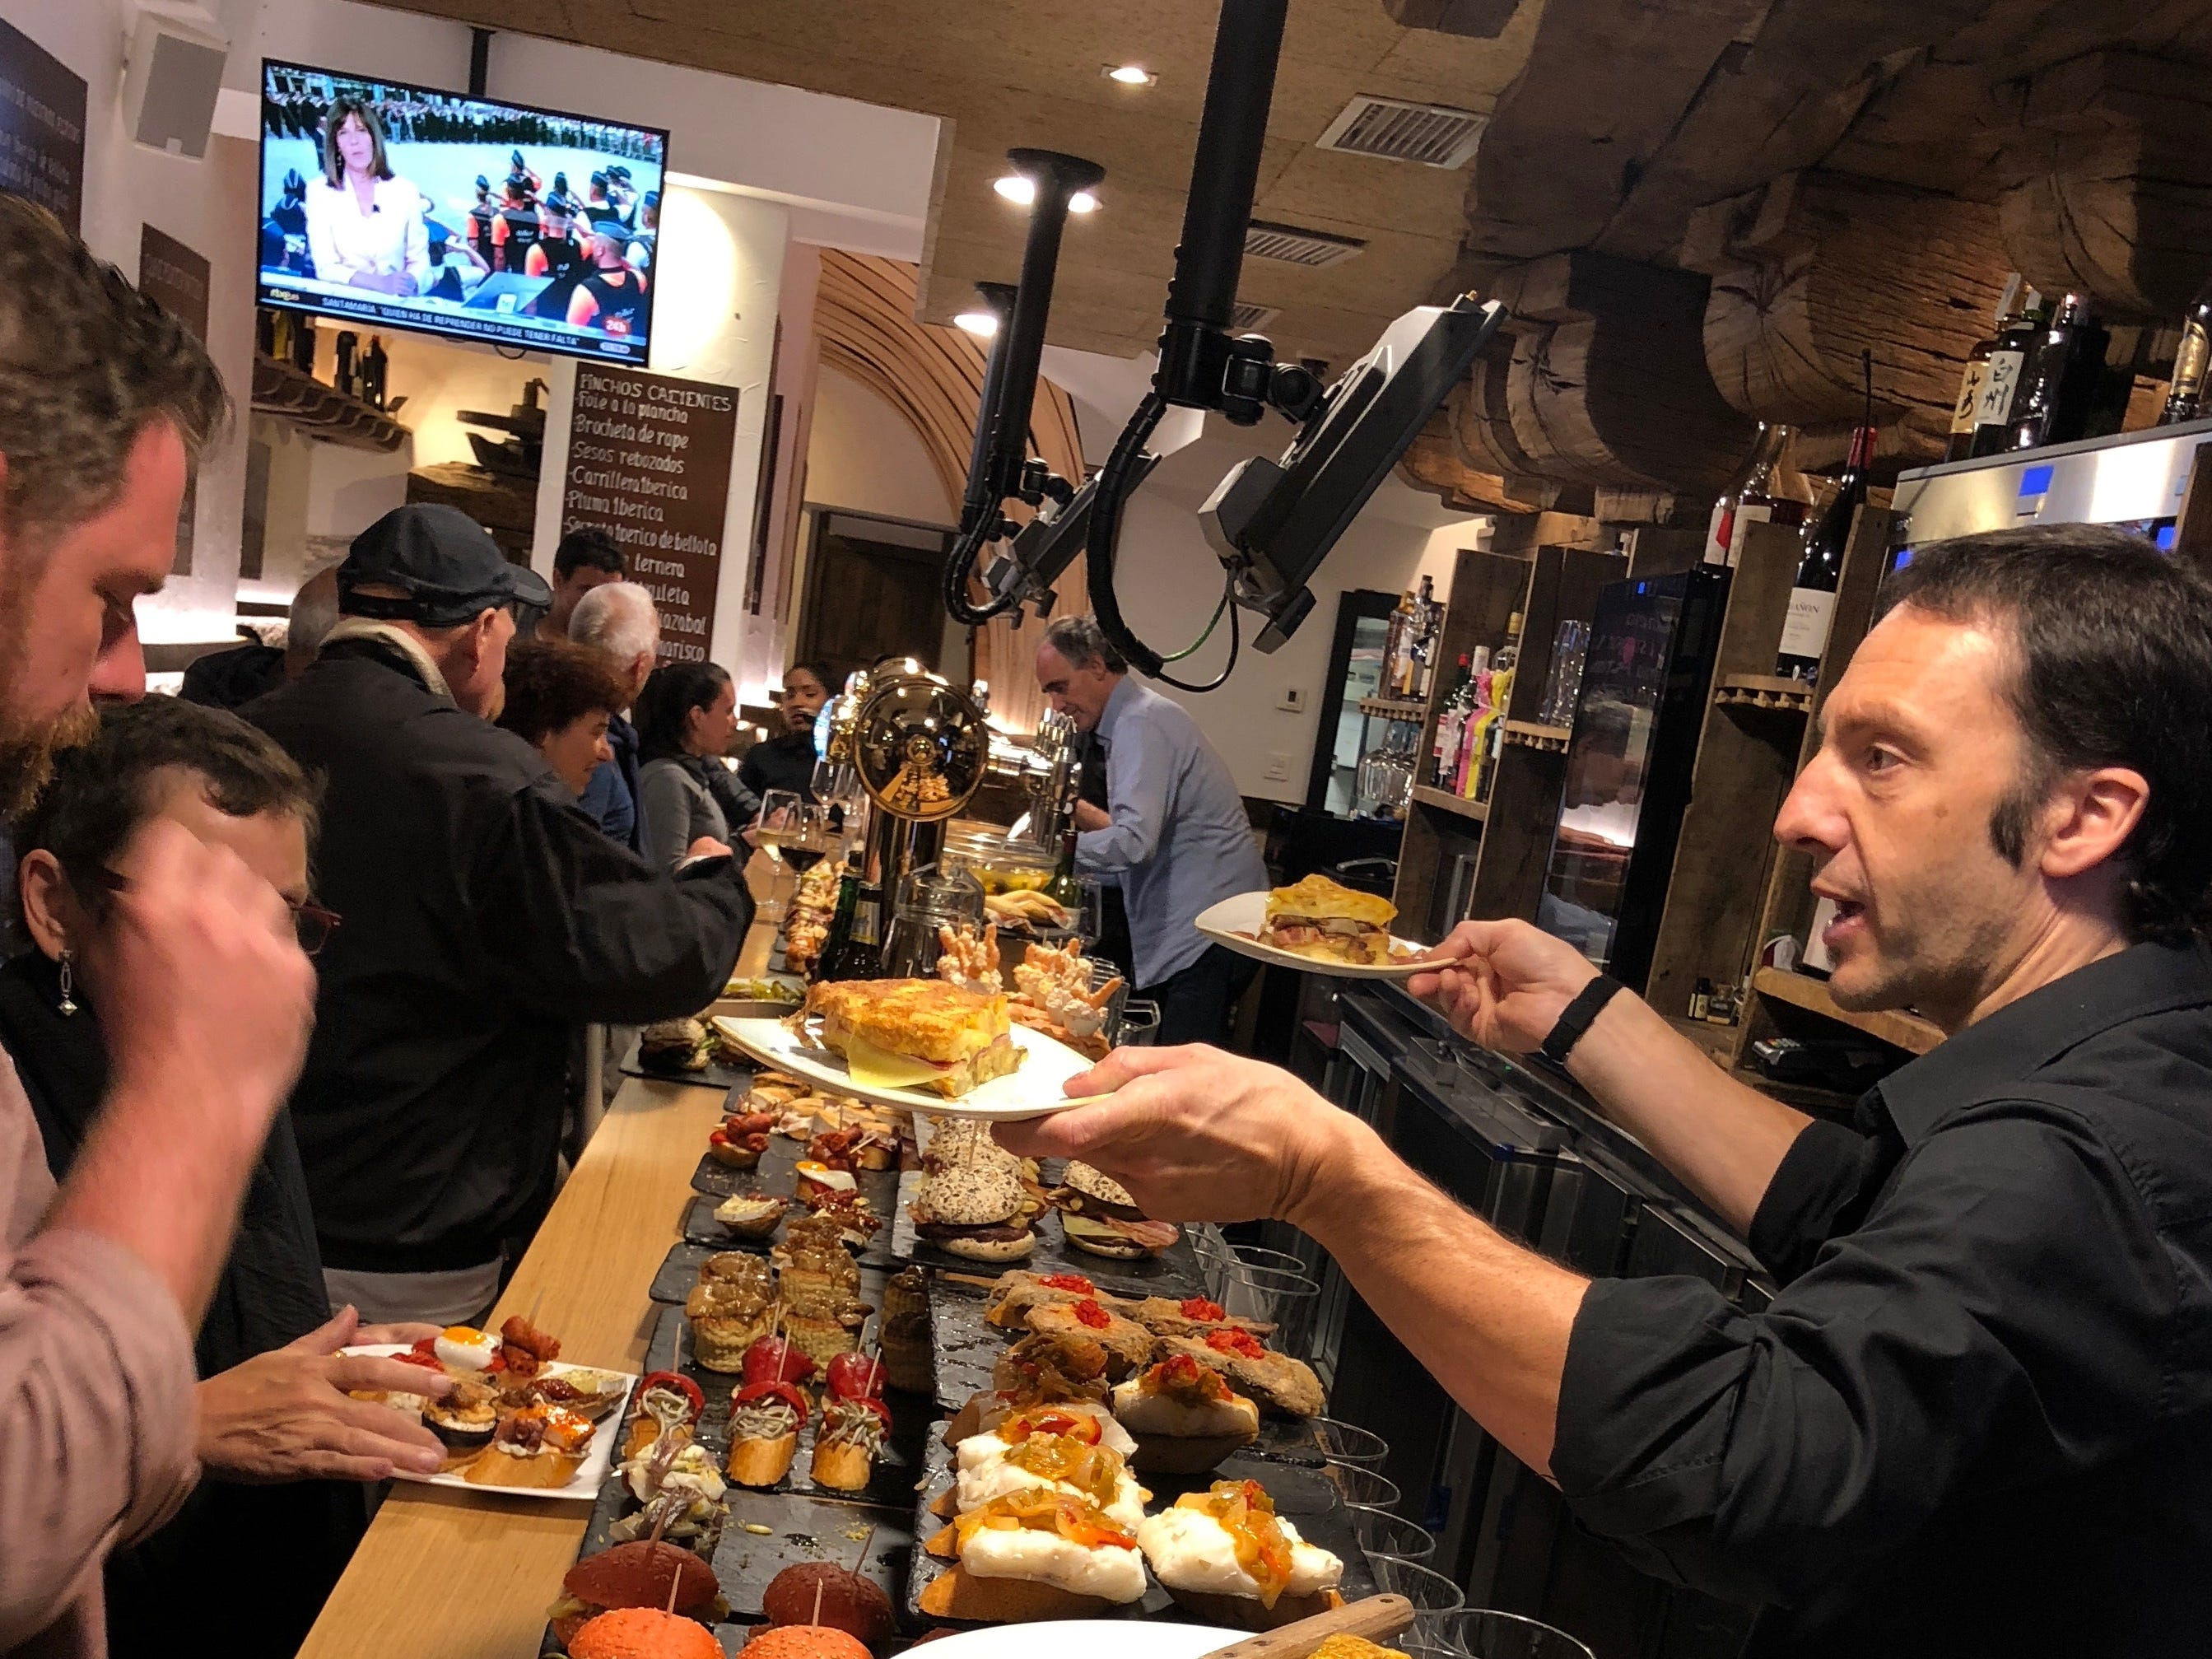 A bartender helps a patron order pintxos at Lete Taberna in San Sebastian, Spain. In the evening, tourists and residents alike go on pintxos crawls, grabbing bites at various taverns.